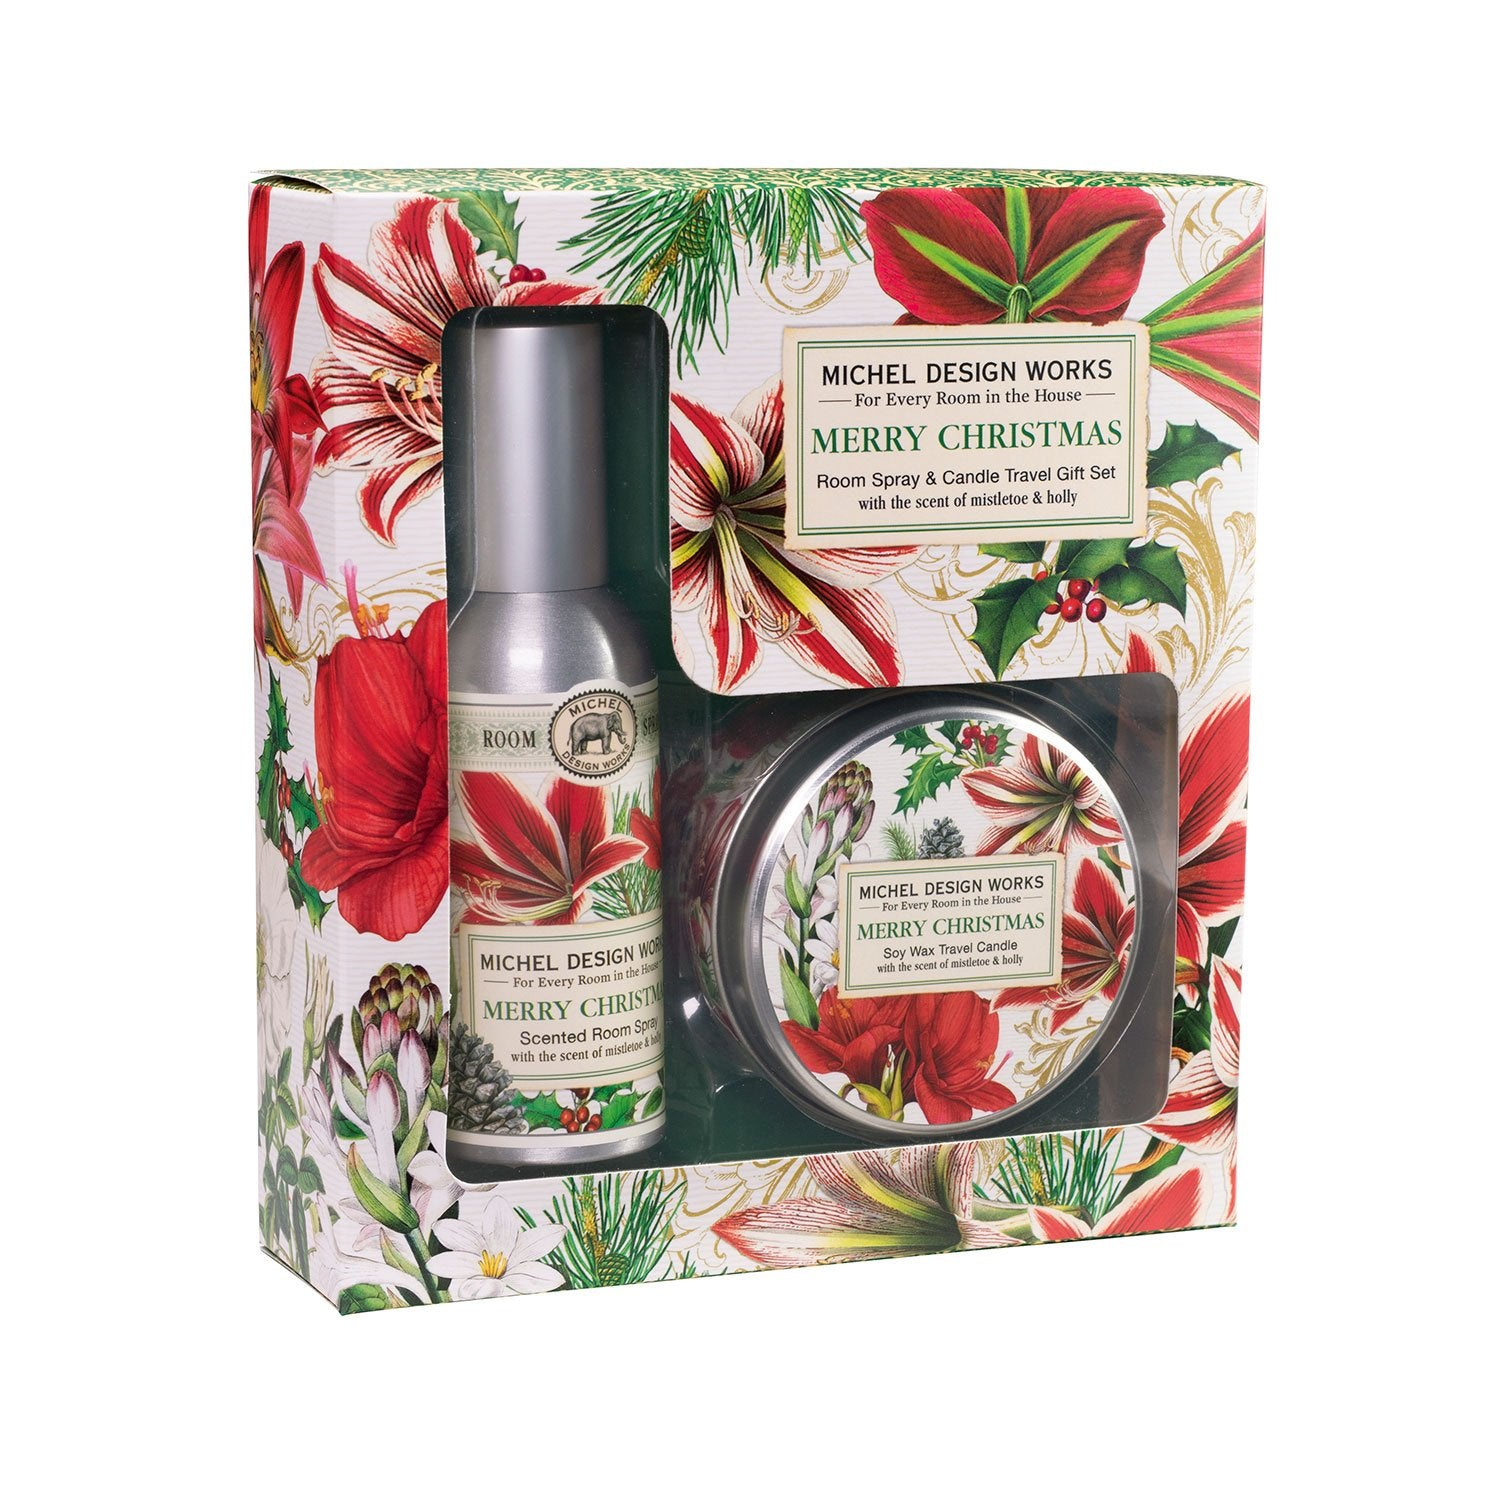 Merry Christmas Room Spray and Travel Candle Set